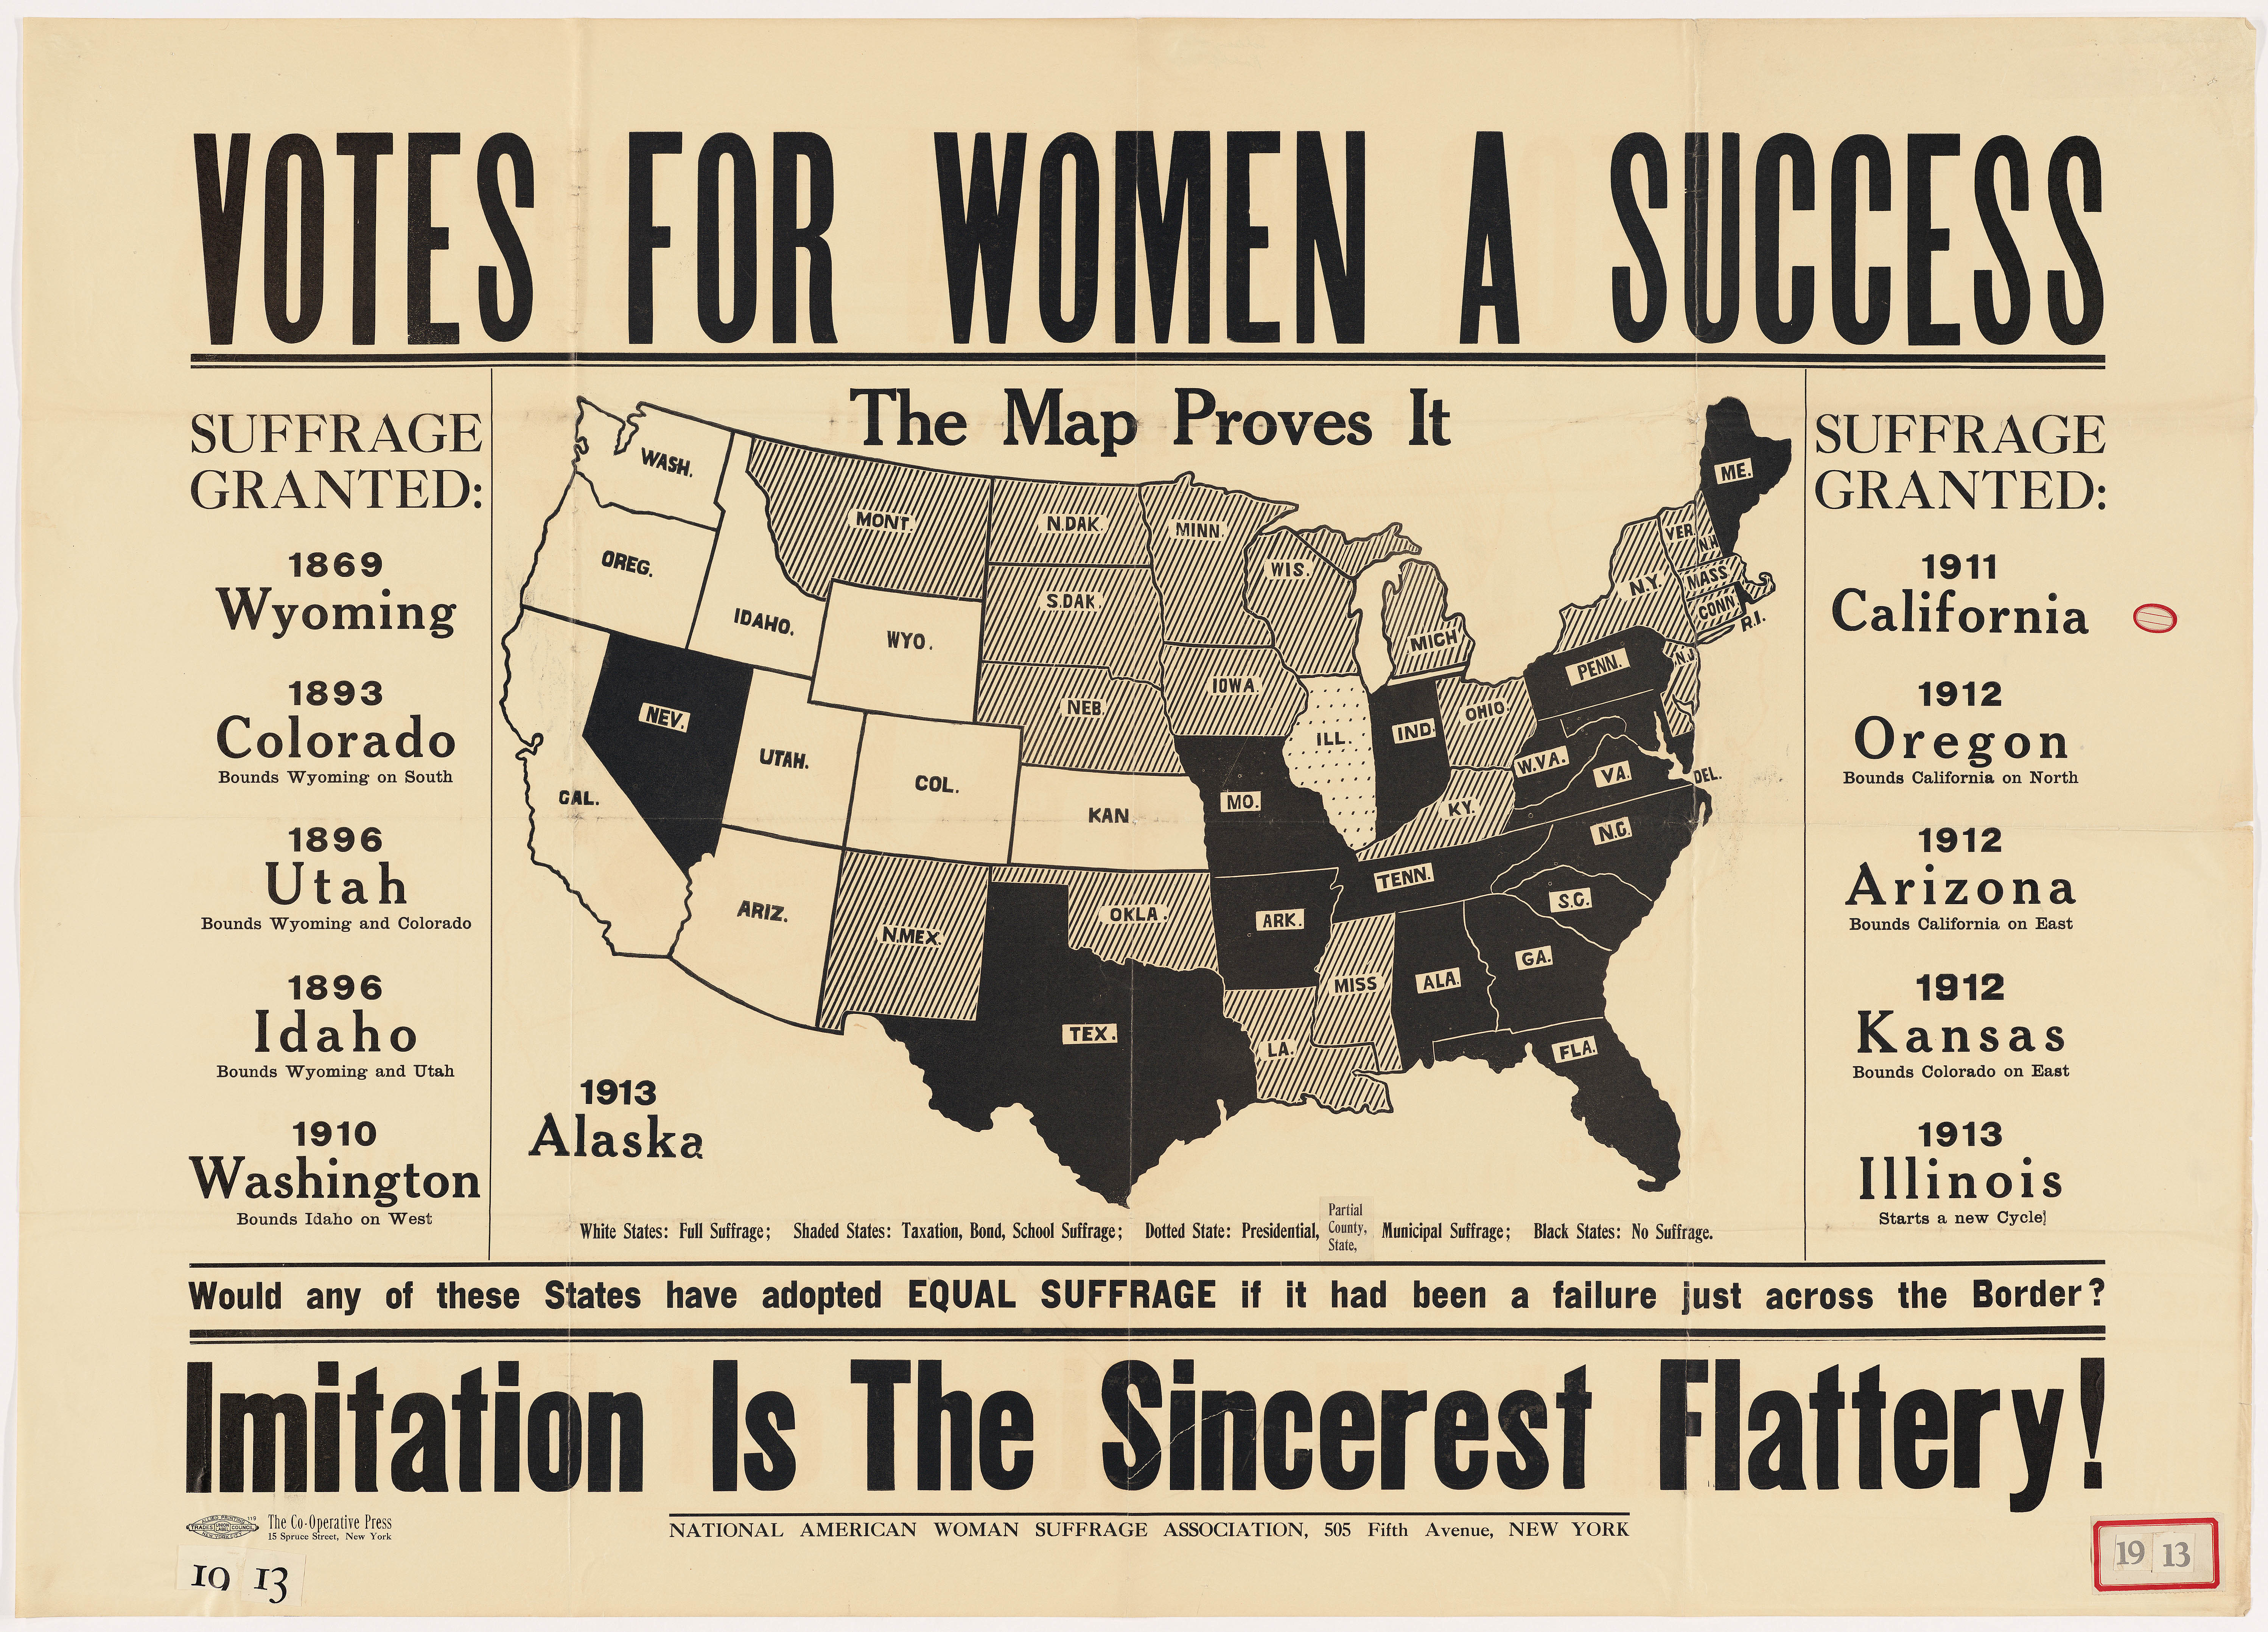 <i>Votes for Women a Success, Imitation is the Sincerest Flattery!!</i>